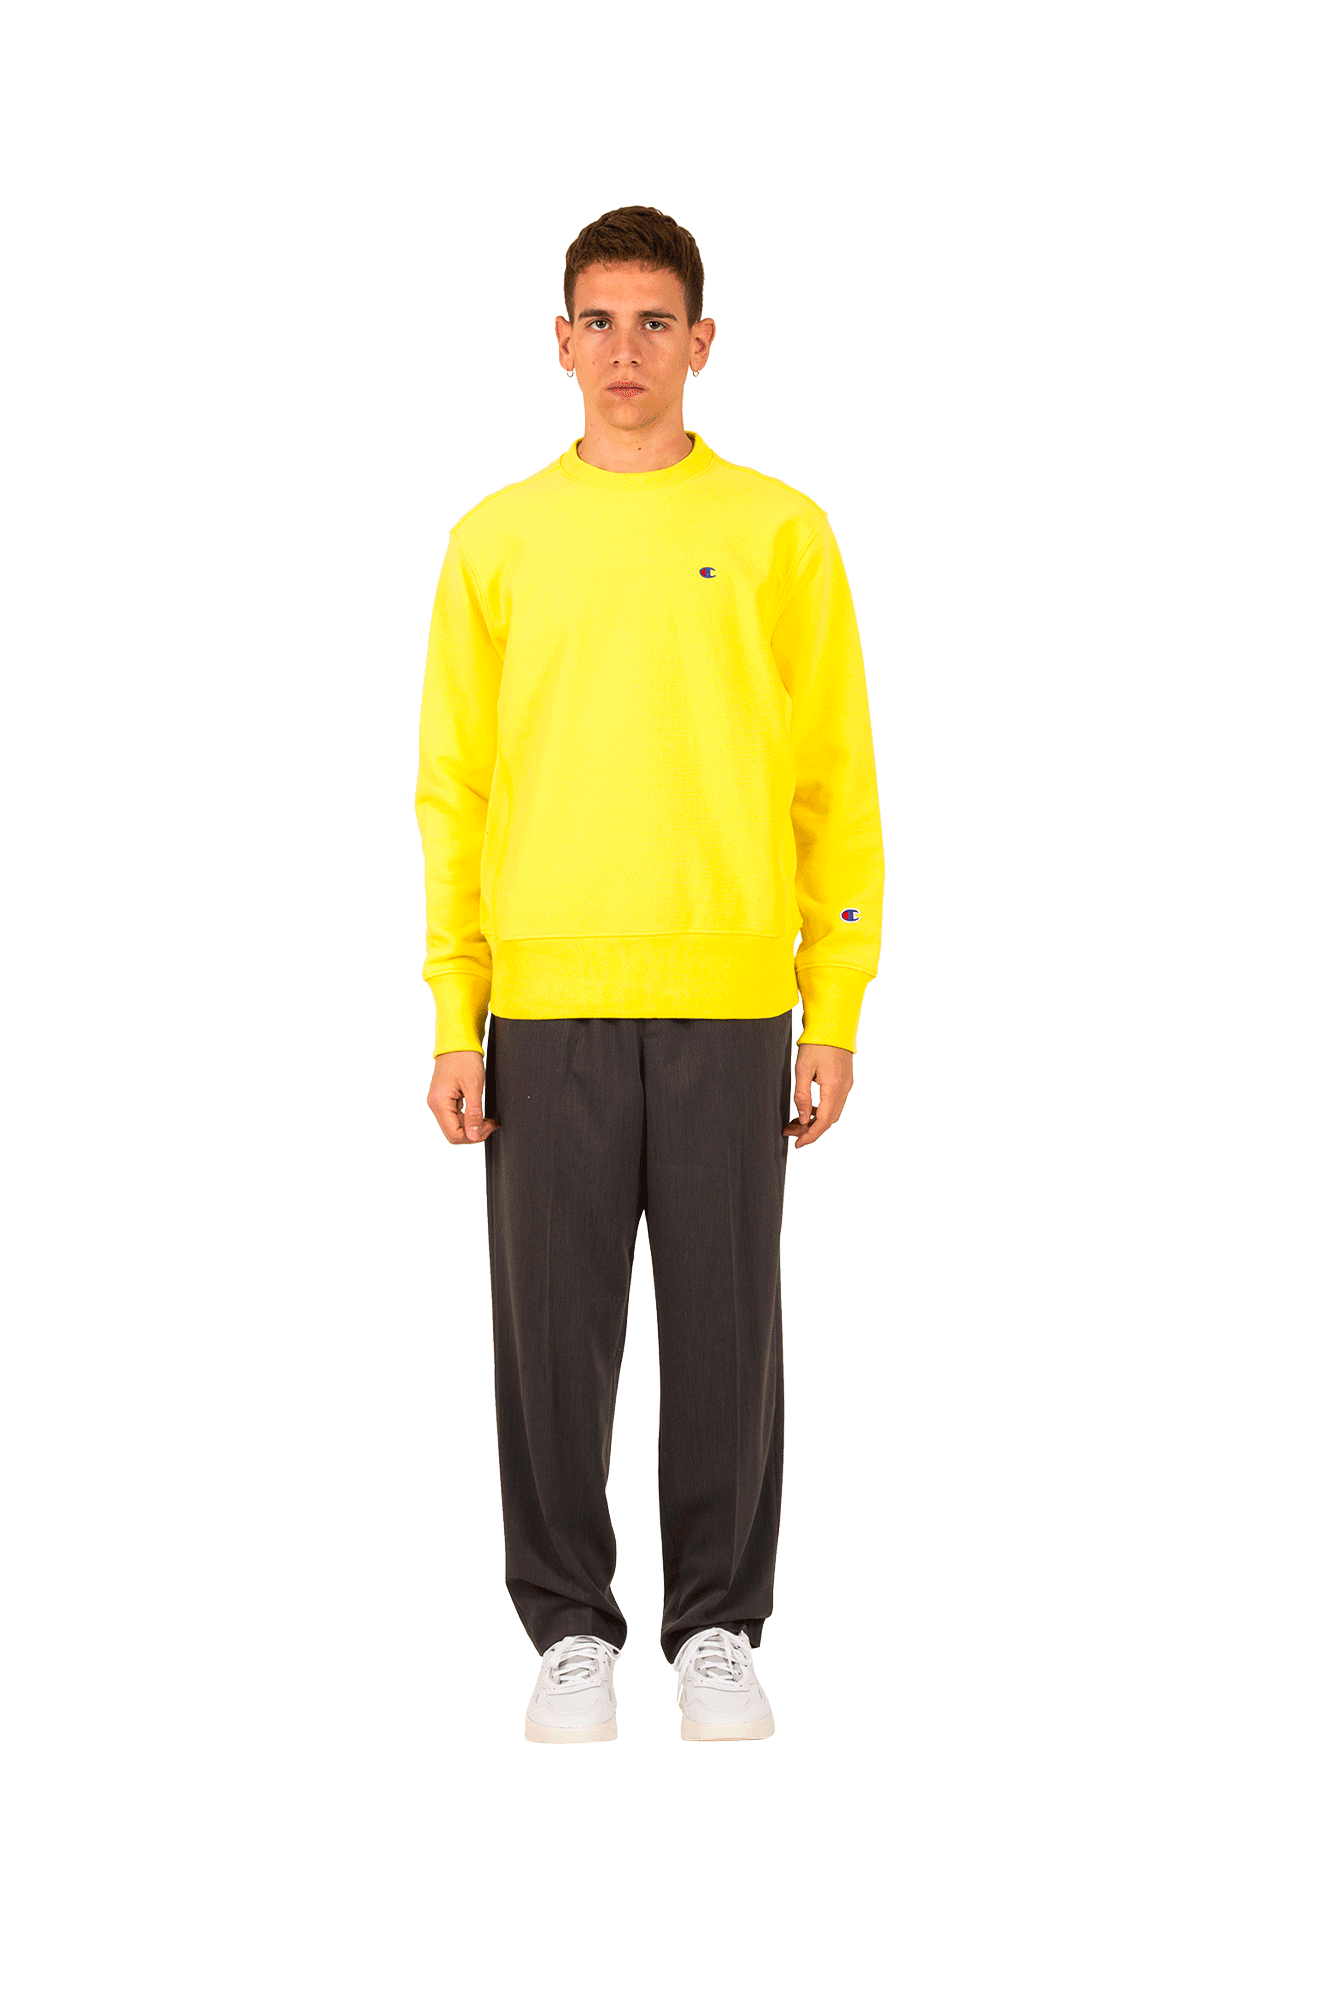 Champion Felpe Crewneck Giallo 210965#YS062#C0008#XXS - One Block Down